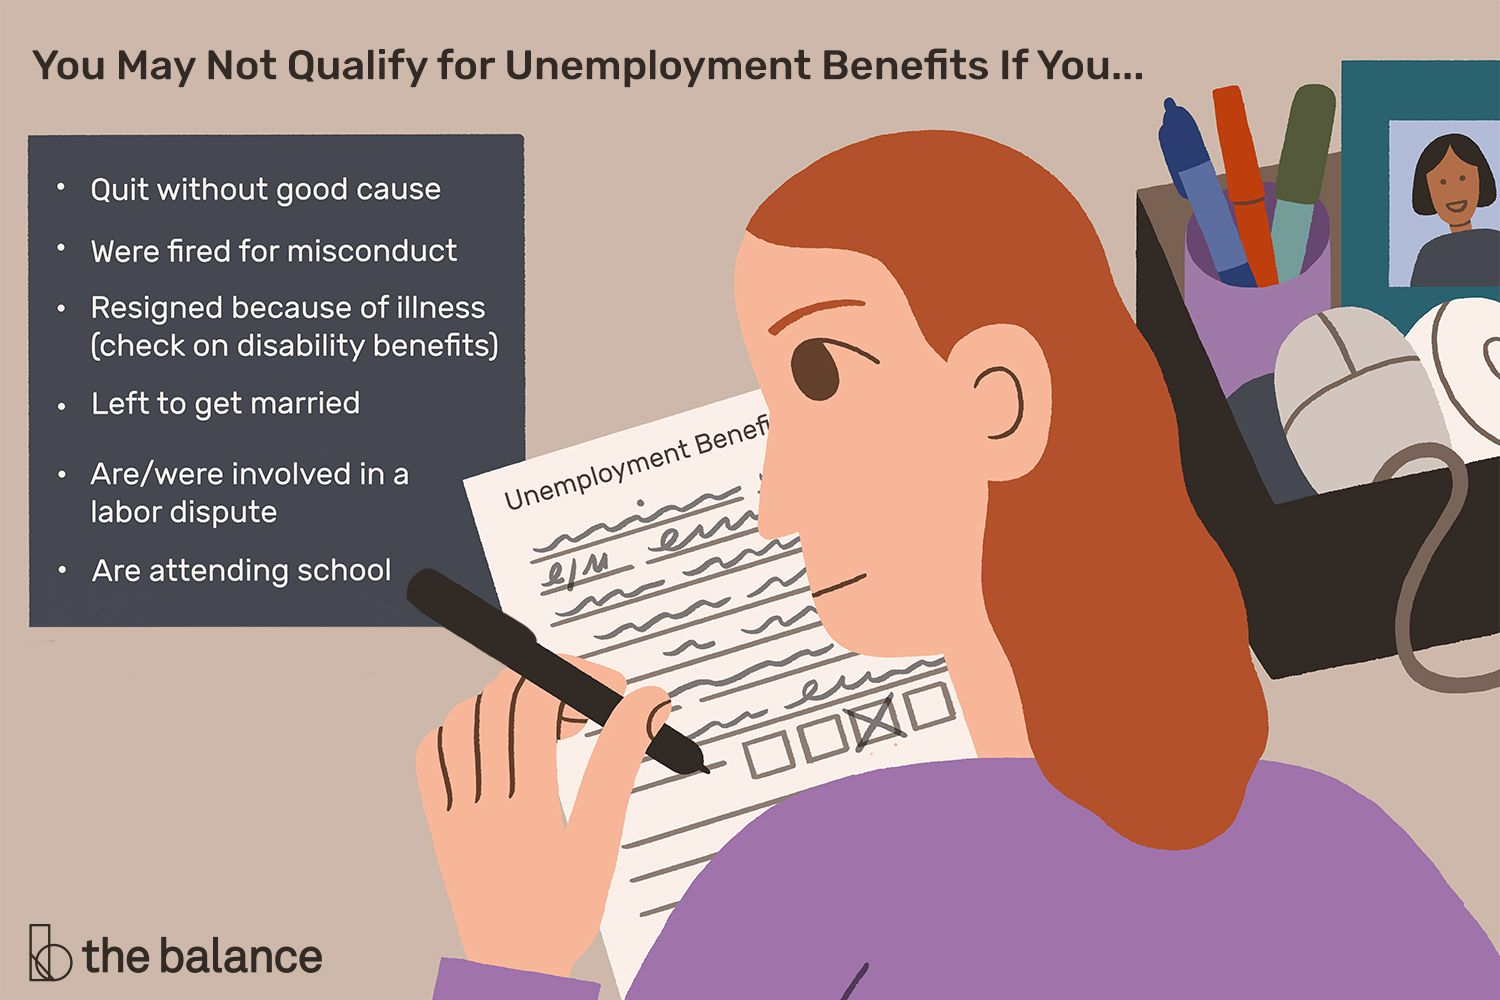 This illustration describes why you may not qualify for unemployment benefits including